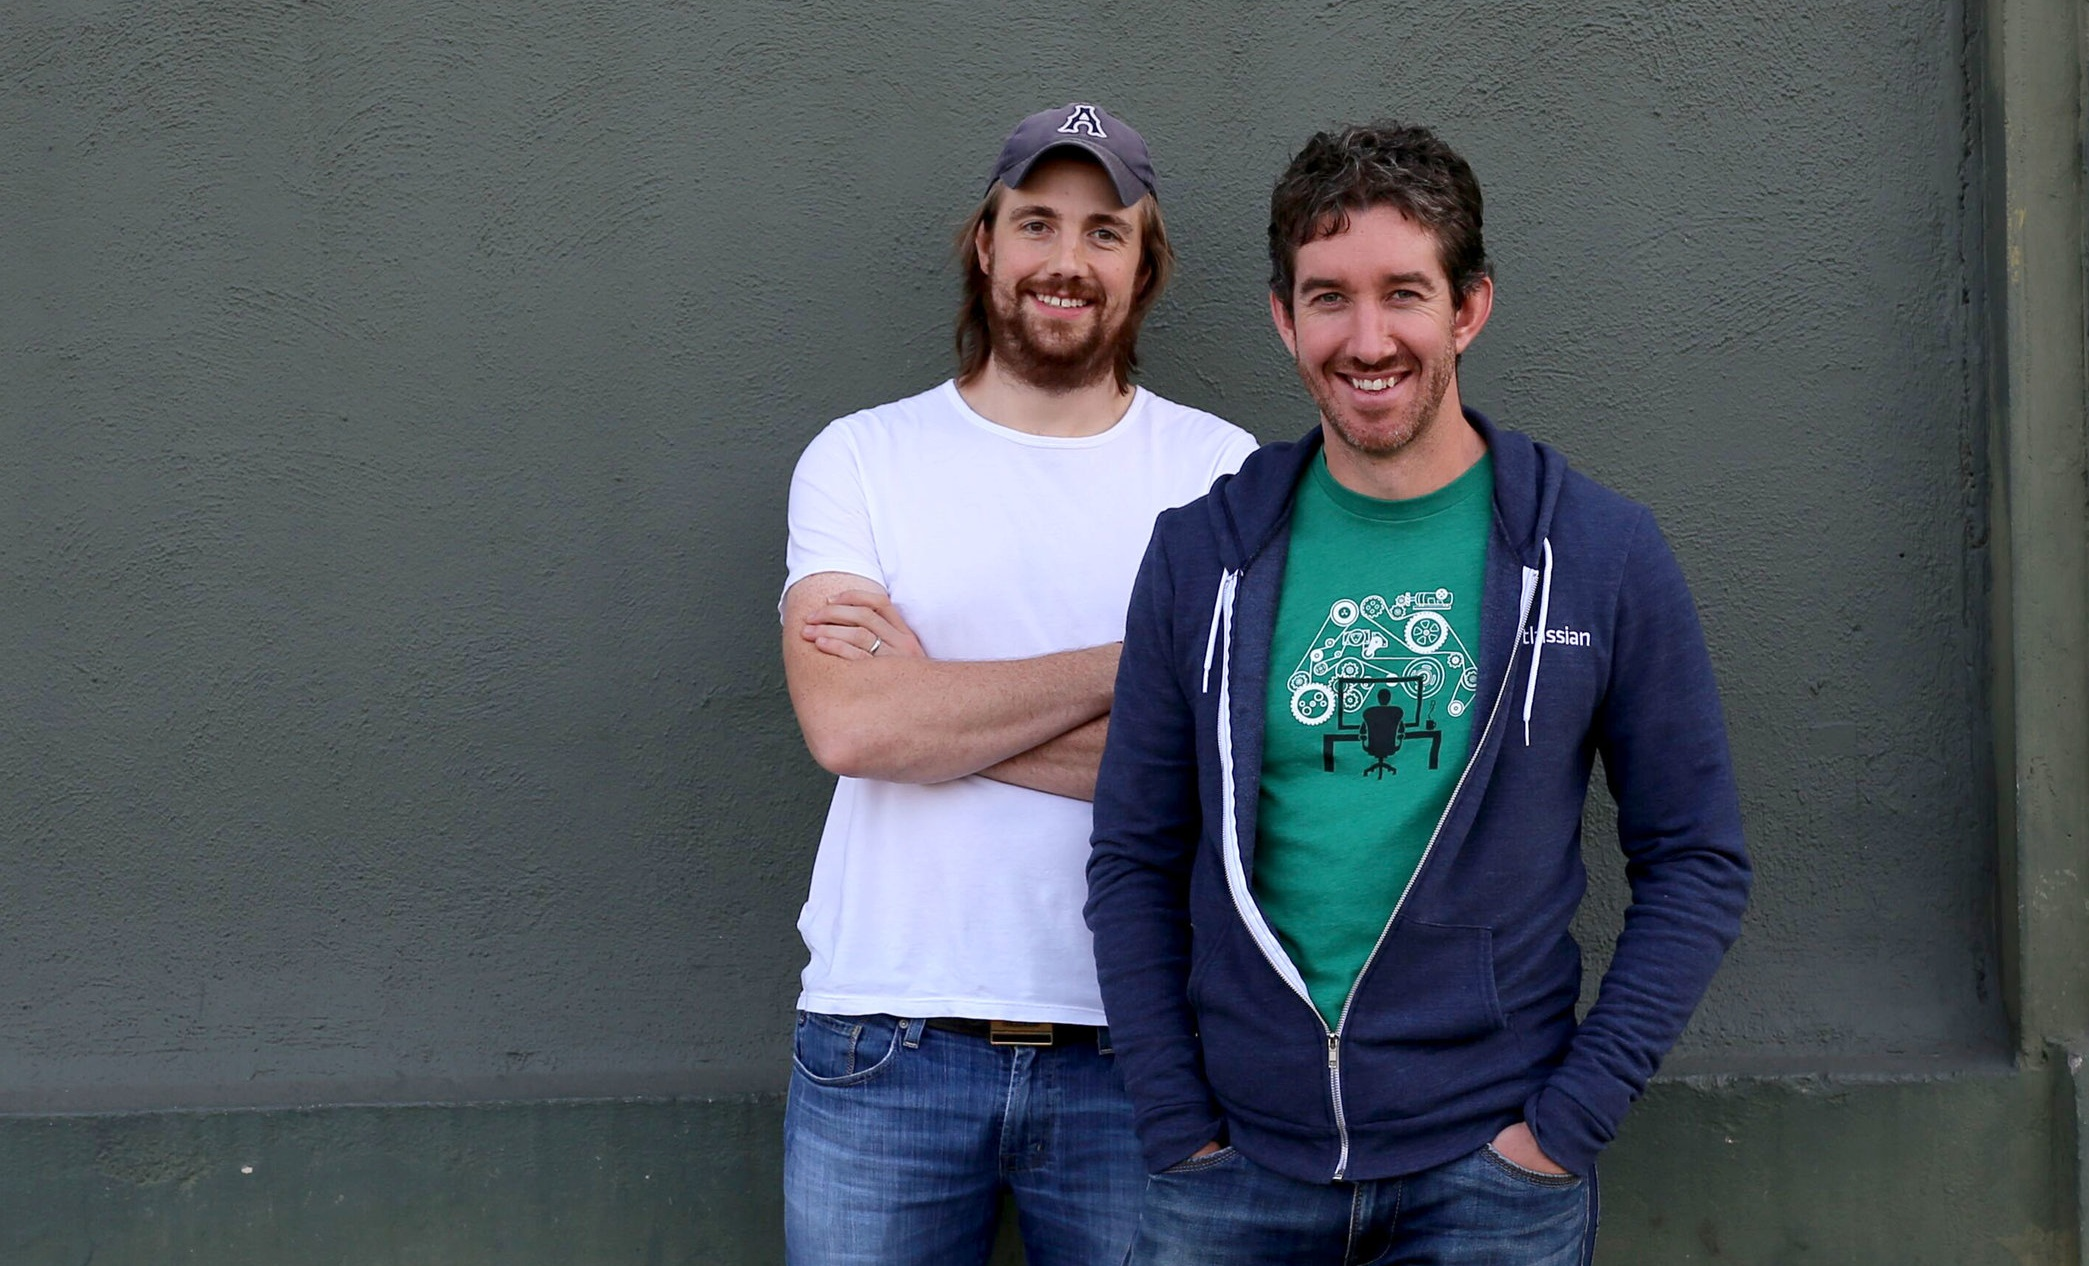 Tech billionaires Mike Cannon-Brookes and Scott Farquhar founded Atlassian in 2002.